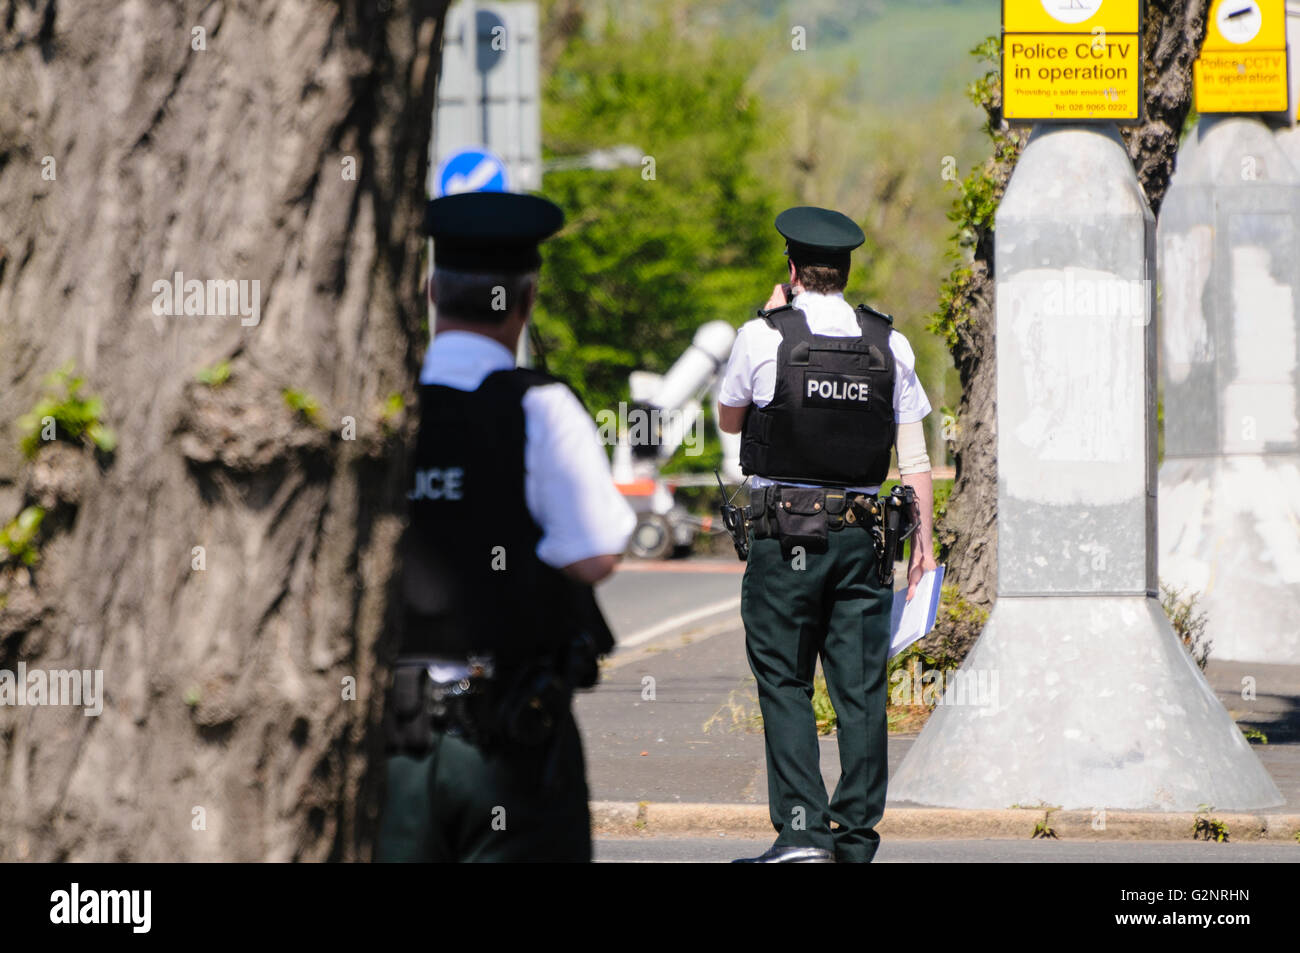 Belfast 26/05/2012 - PSNI  officers in attendance on the Limestone Road, where a suspect device was discovered. - Stock Image